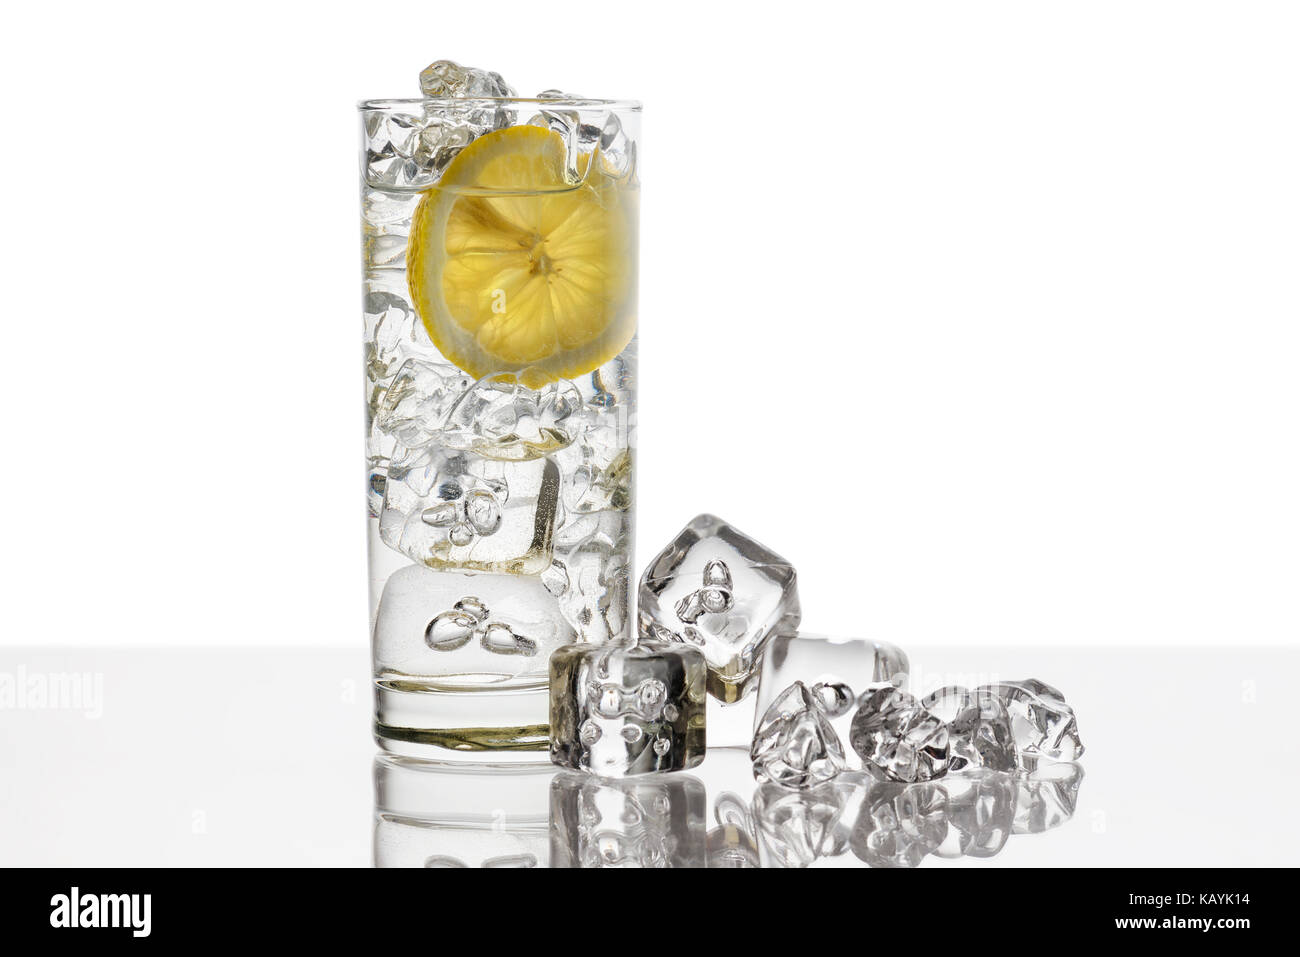 glass full of fresh water with lemon slice and ice cubes on background - Stock Image